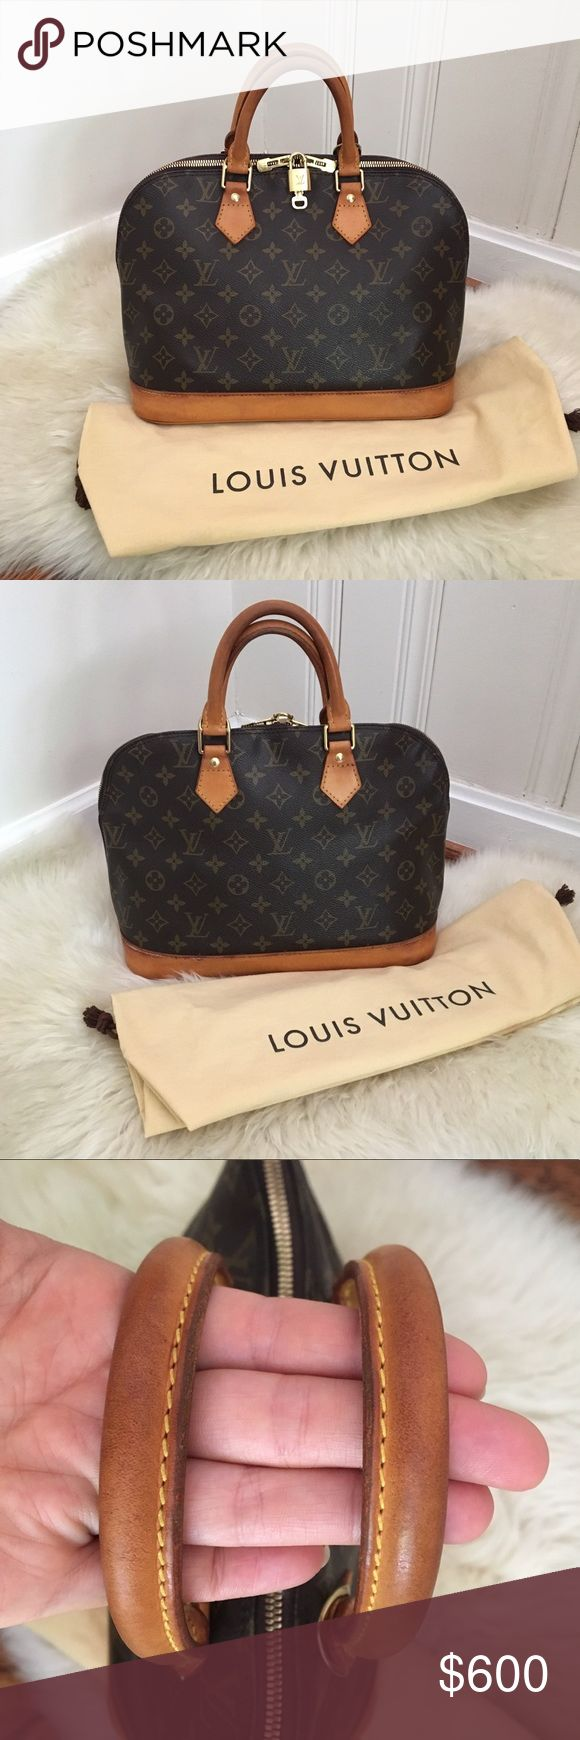 Authentic Louis Vuitton Alma PM Made November 1996 in France. I have conditioned the leather and polished the hardware. Monogram canvas is in perfect condition. Interior is clean with only a couple of small spots. Handles have darkened some. Some discoloration along the bottom leather boarder and underside of bag. Doesn't really take away from the beautiful honey patina. I'm not a professional, but I have sealed the micro cracks on the corners of the base of the bag. Dust cover, lock, and…